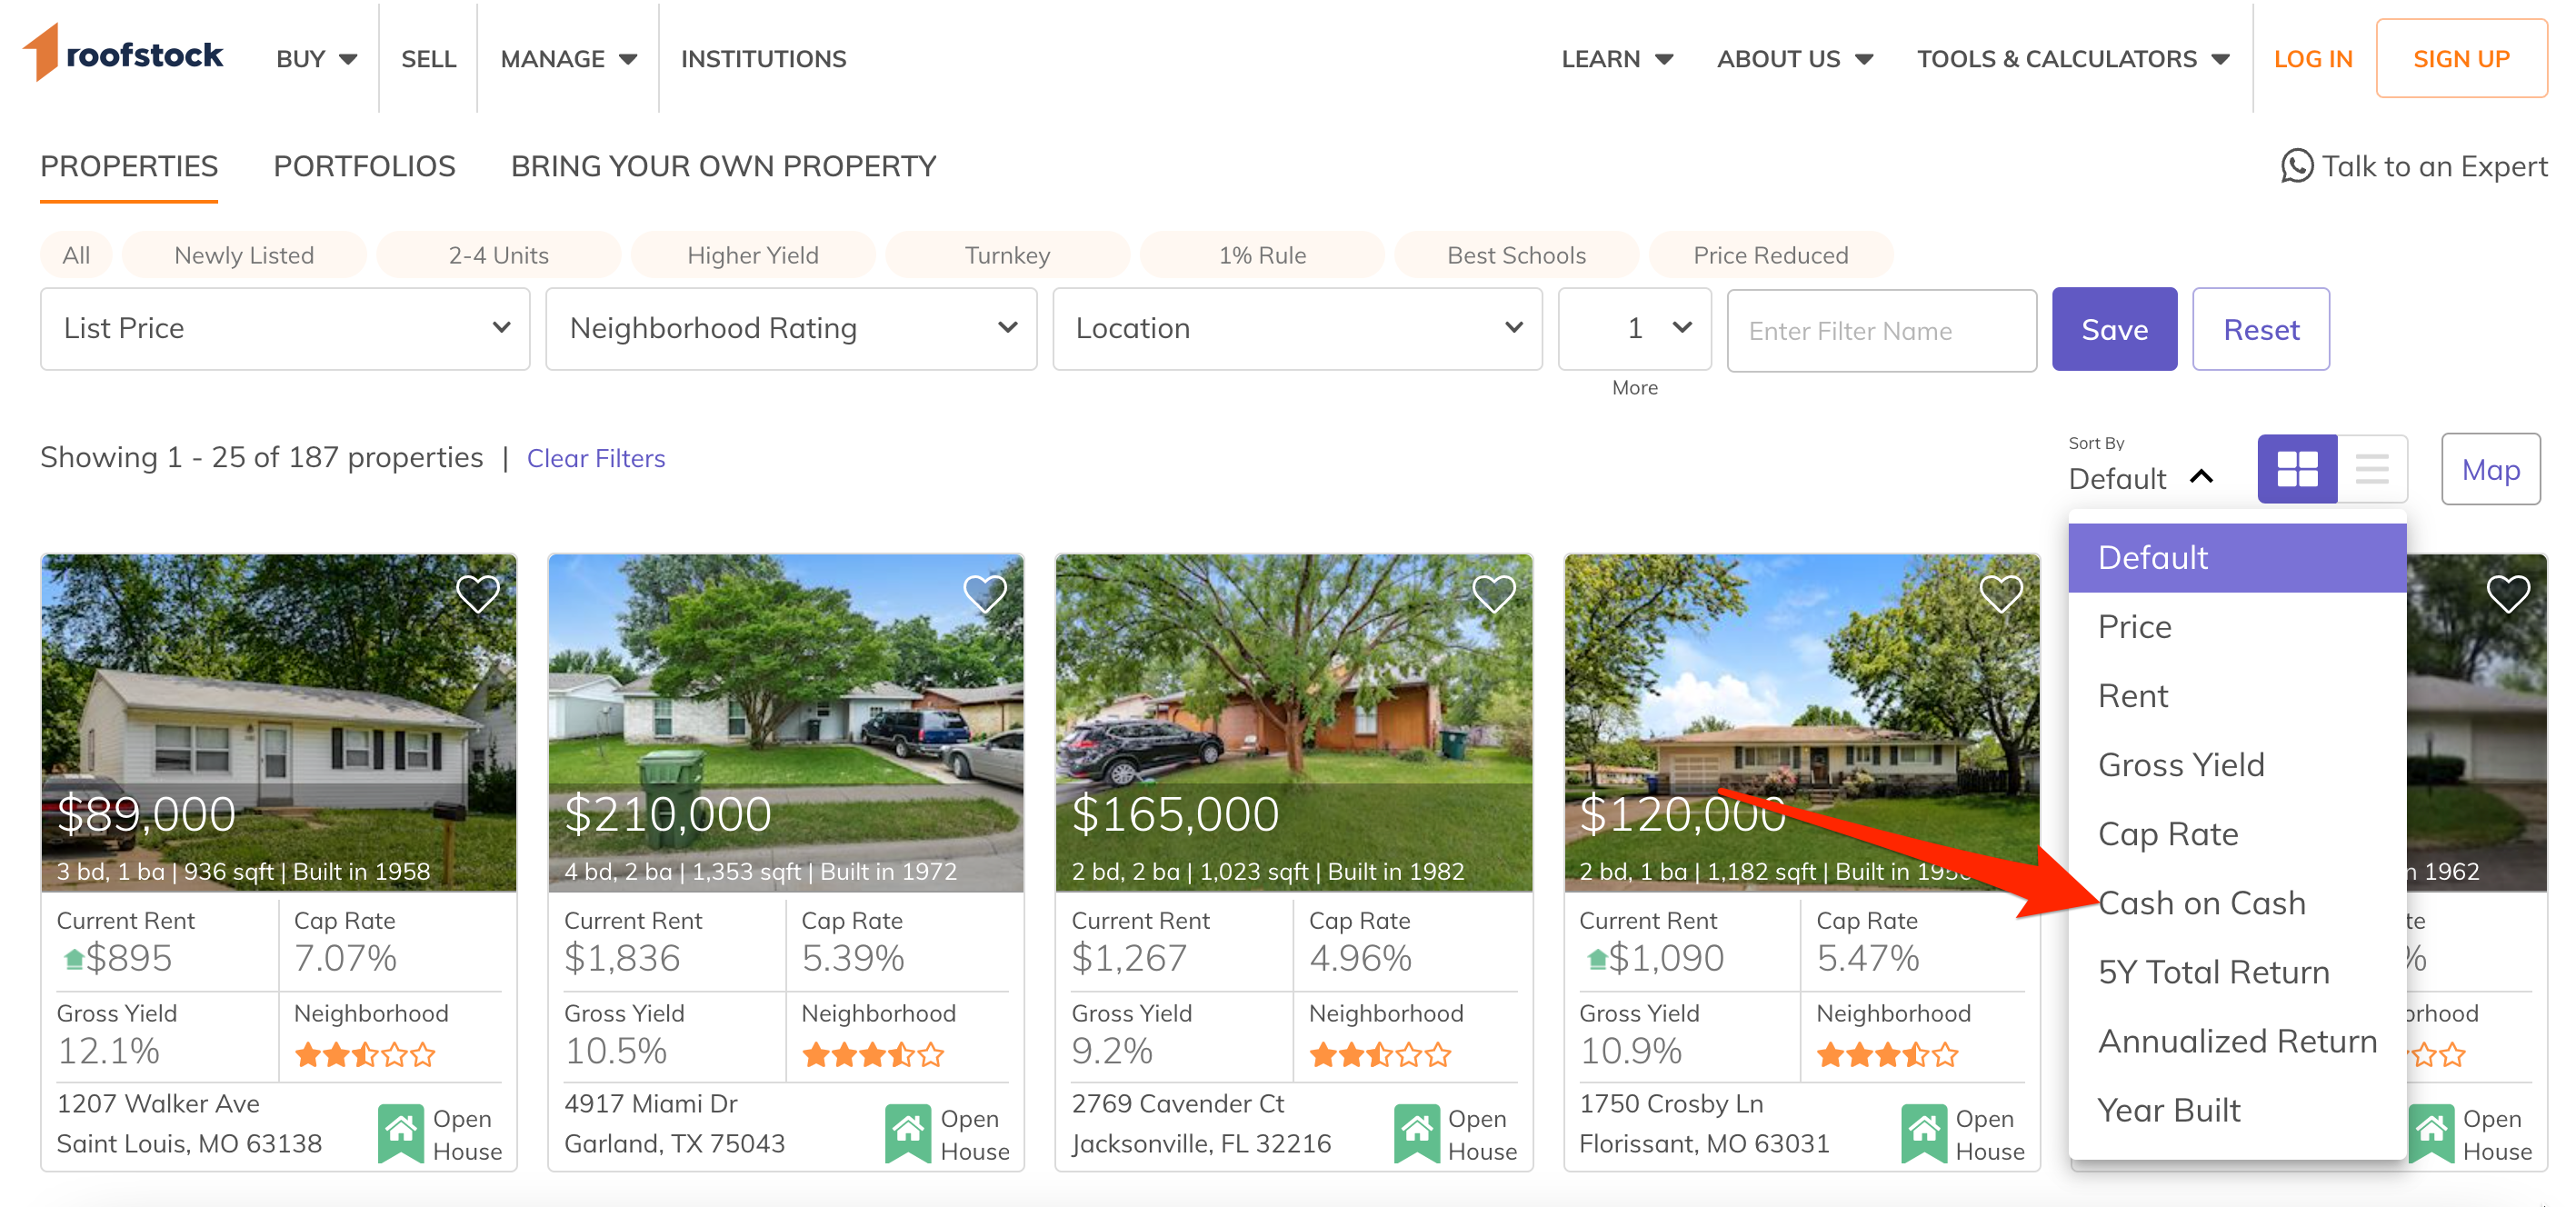 Cursor_and_Rental_Properties___Investment_Property_For_Sale___Roofstock-1